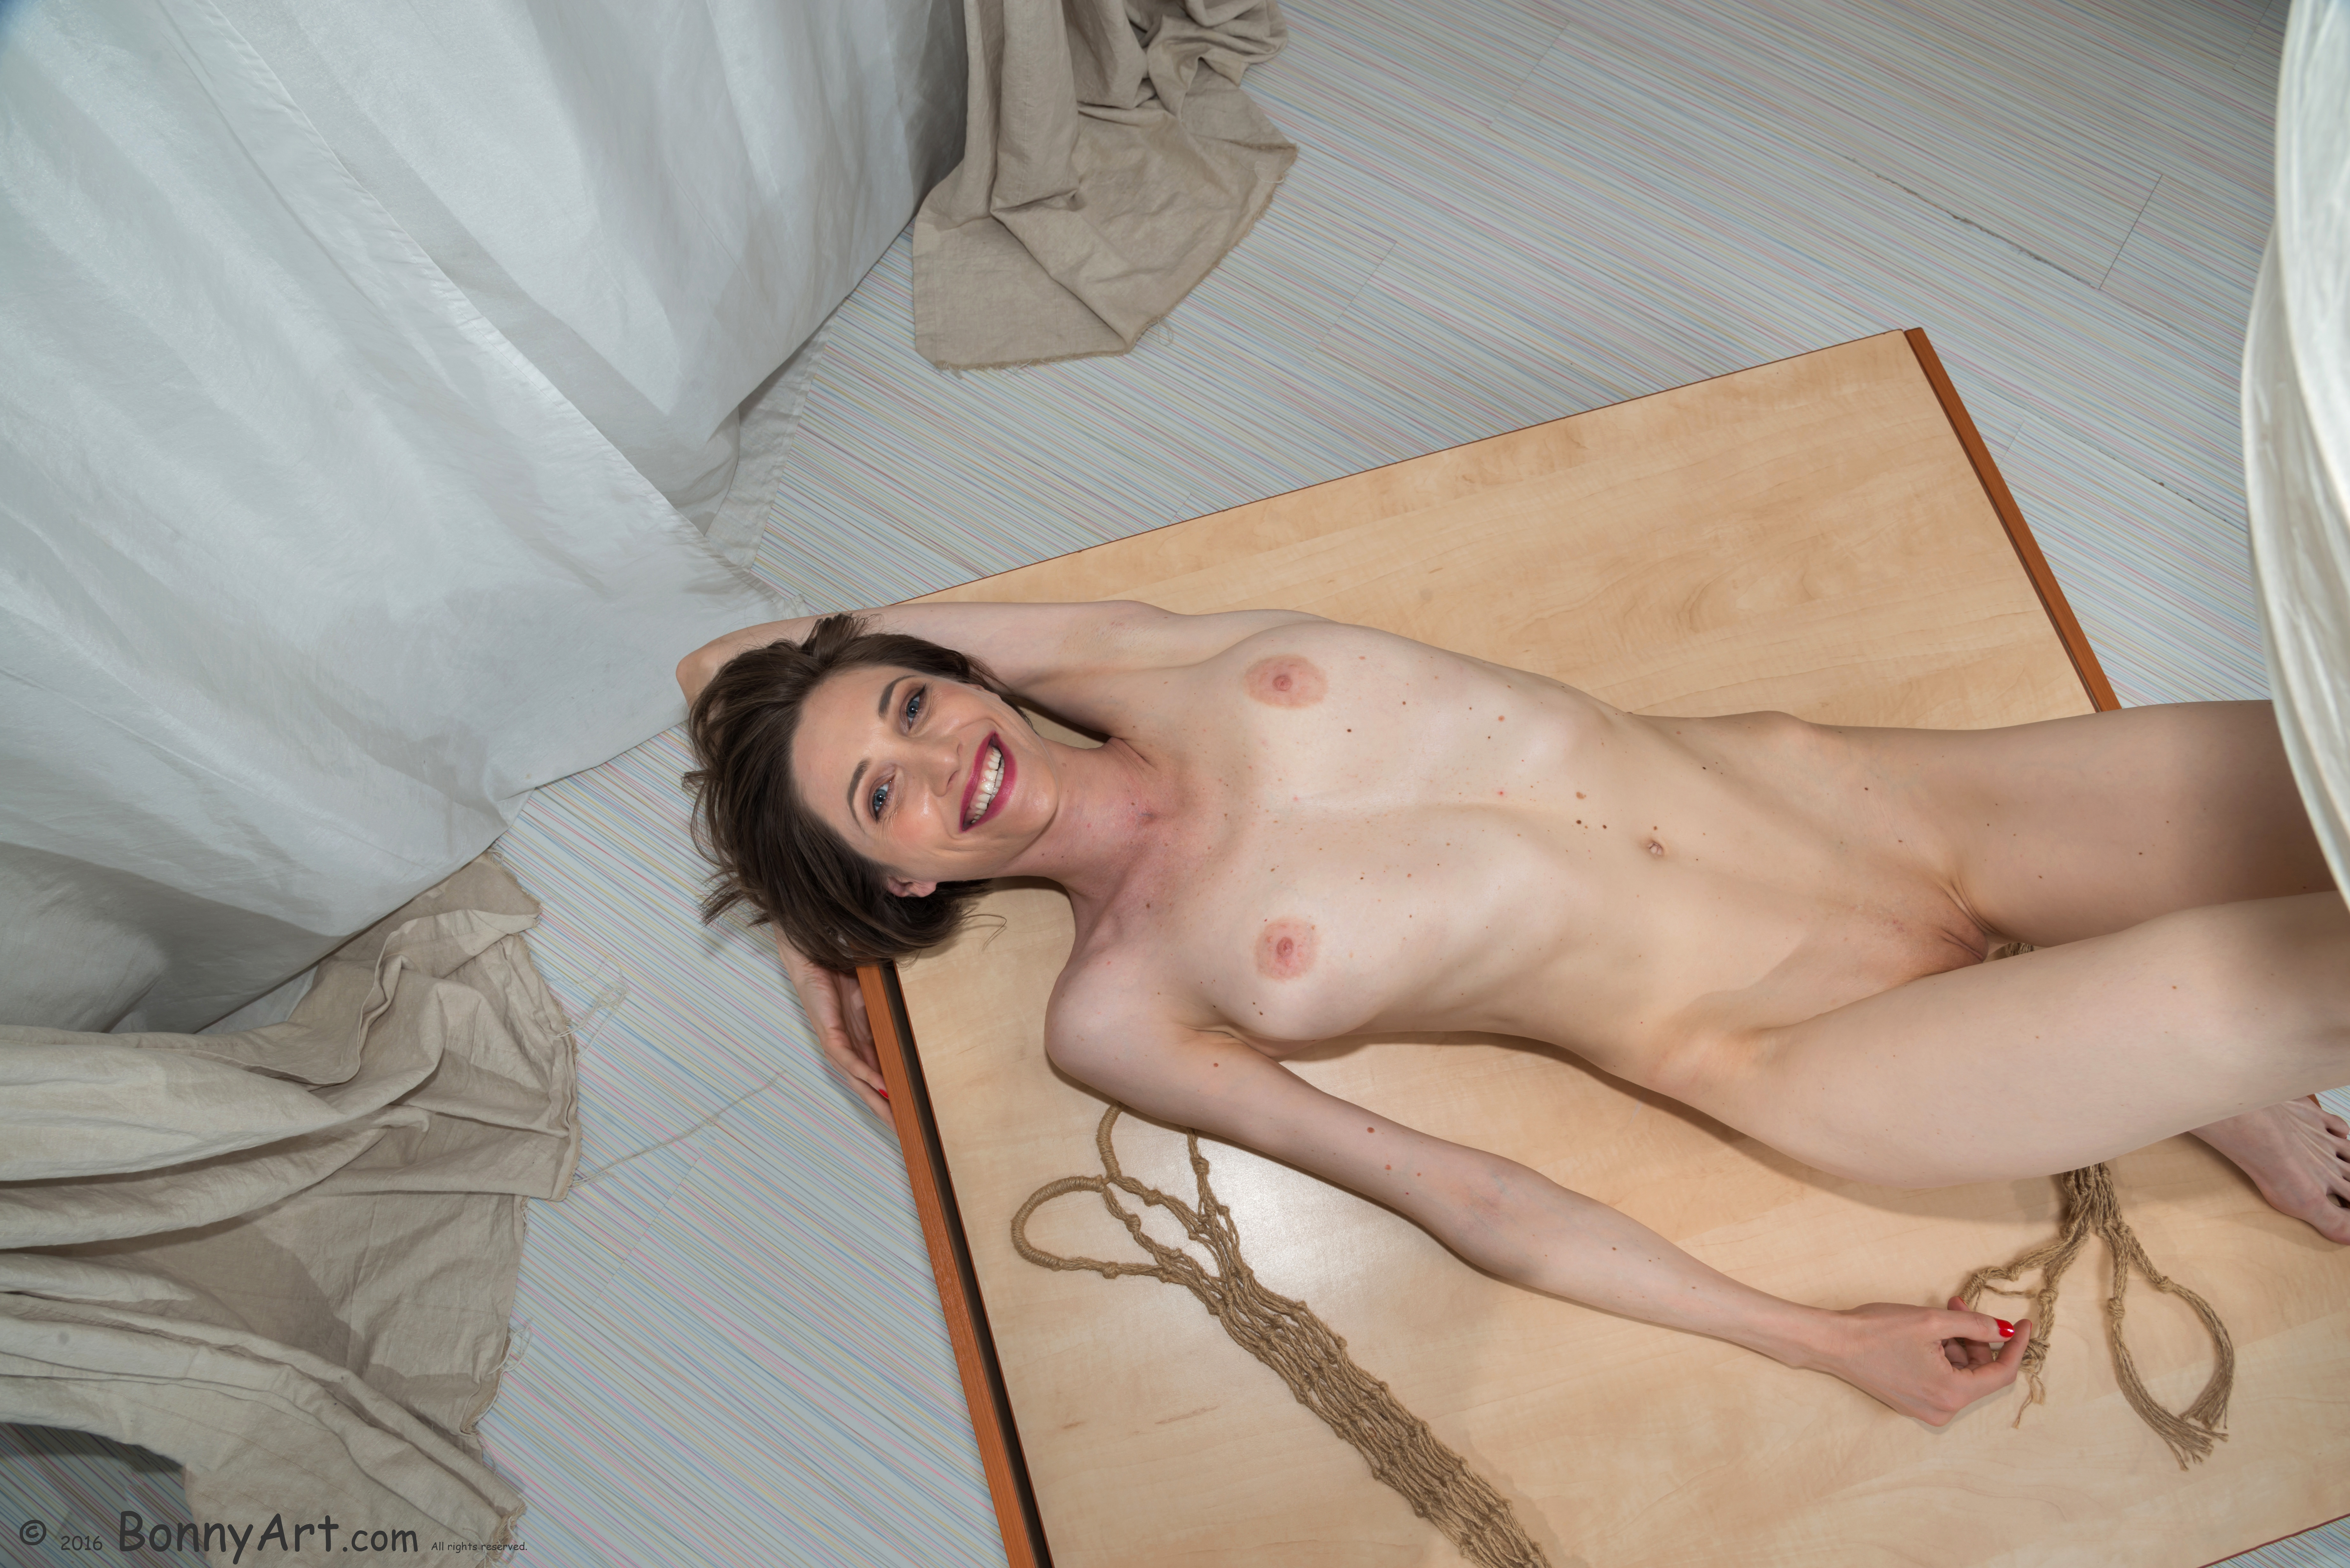 Happy Nude Skinny Woman on the Table HD